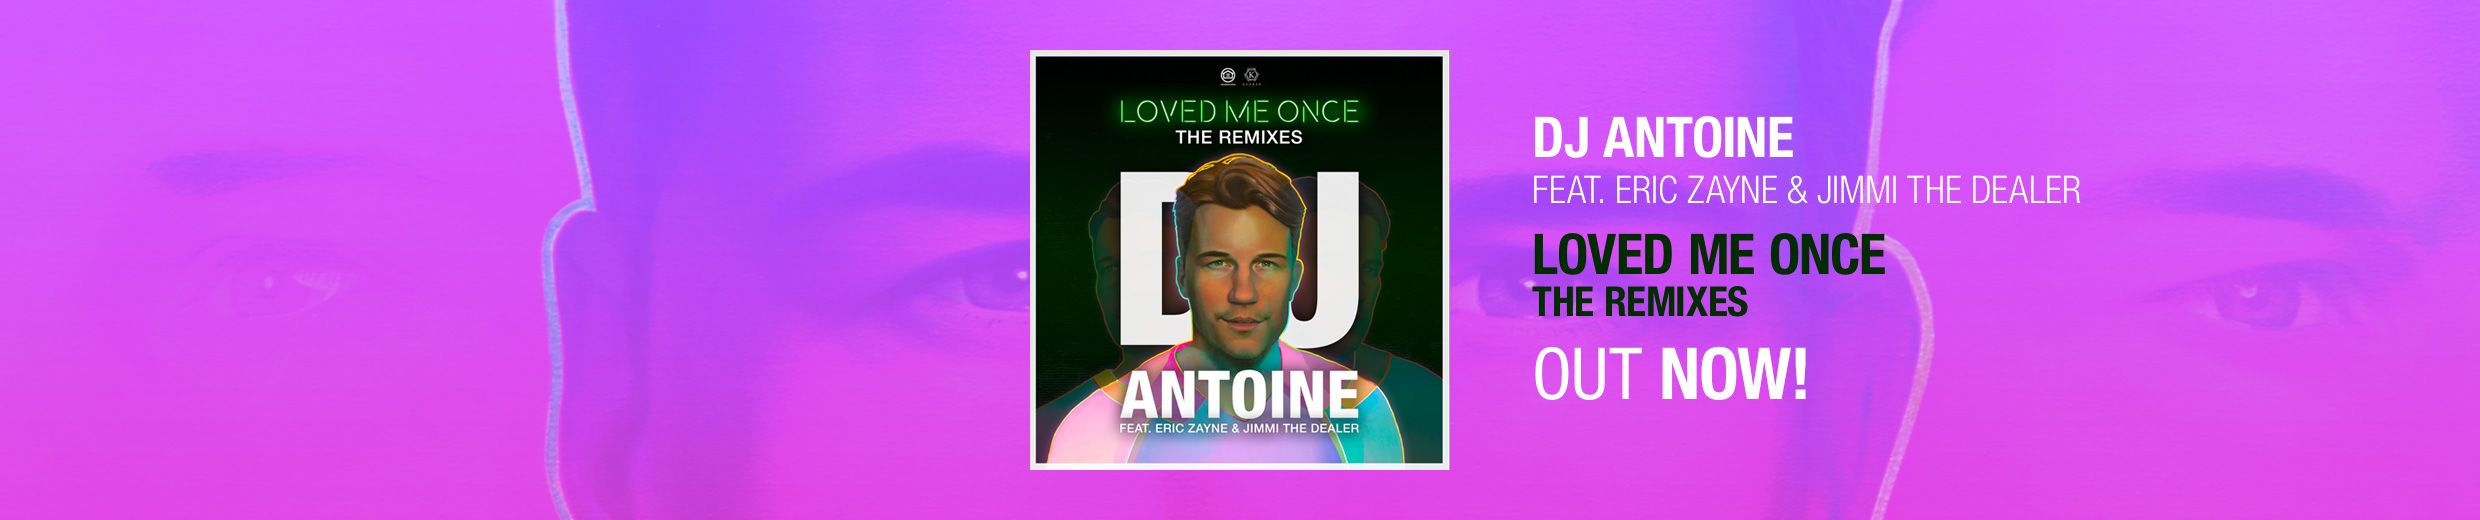 dj antoine this time скачать mp3 бесплатно